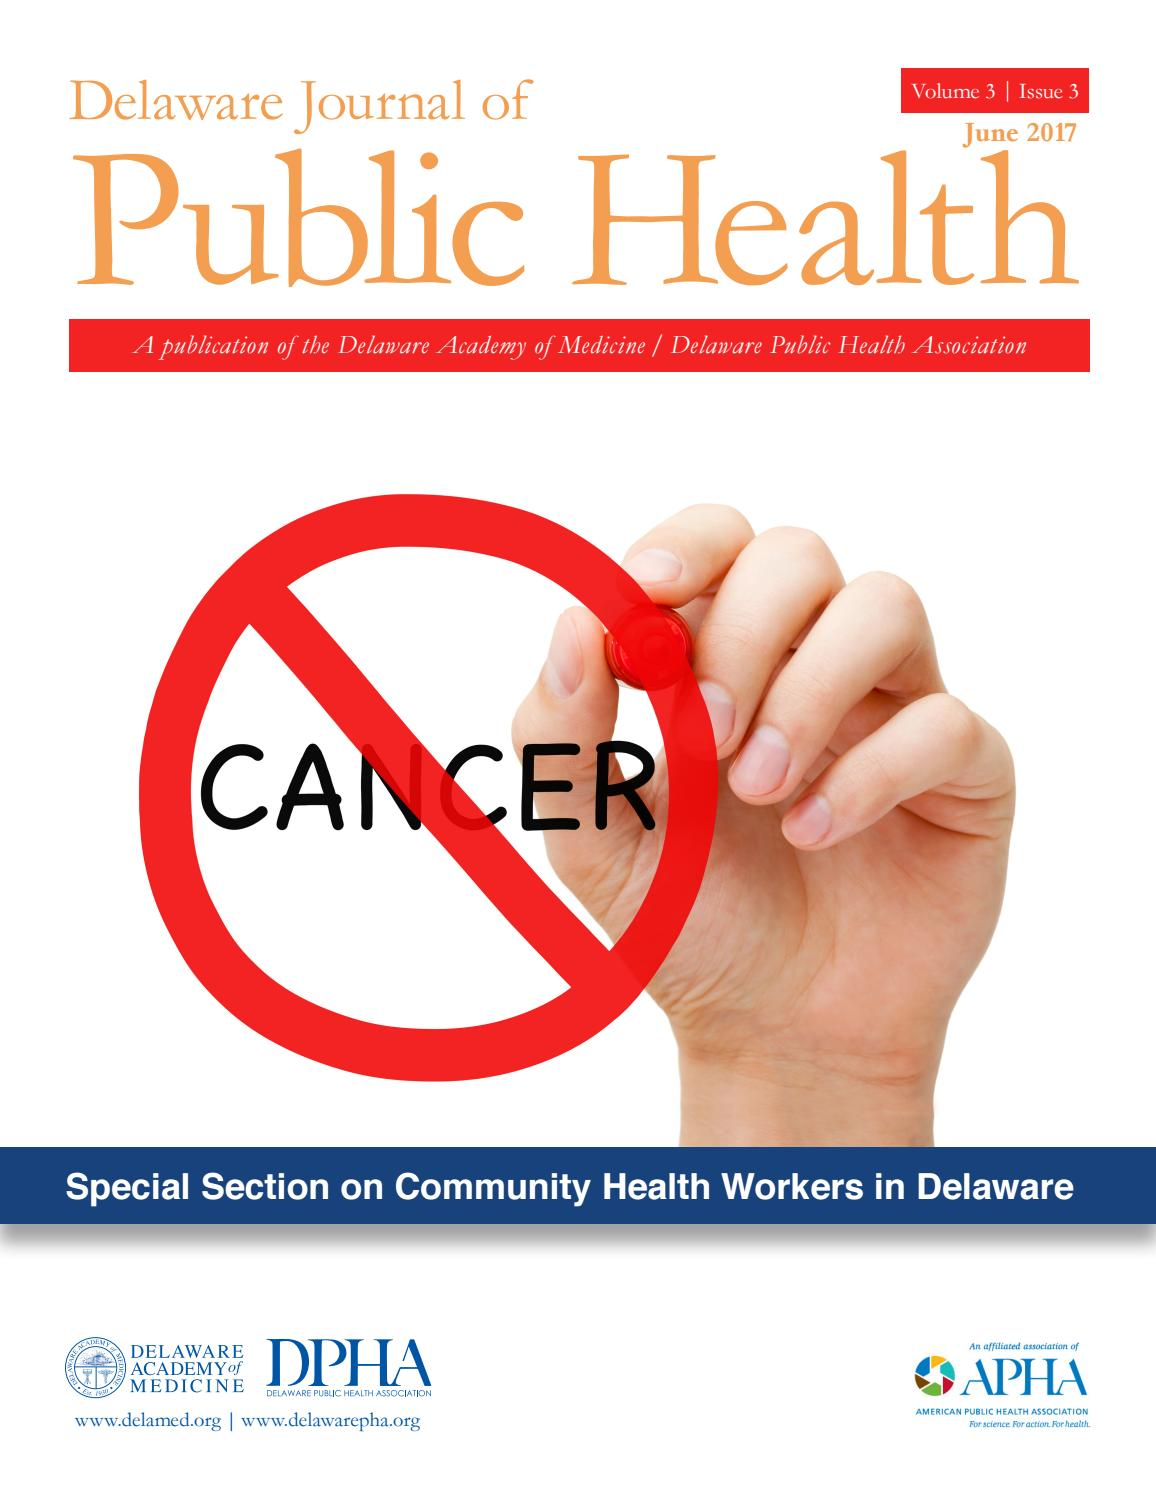 Delaware Journal of Public Health, Cancer Issue by Delaware Academy of  Medicine and the Delaware Public Health Association - issuu